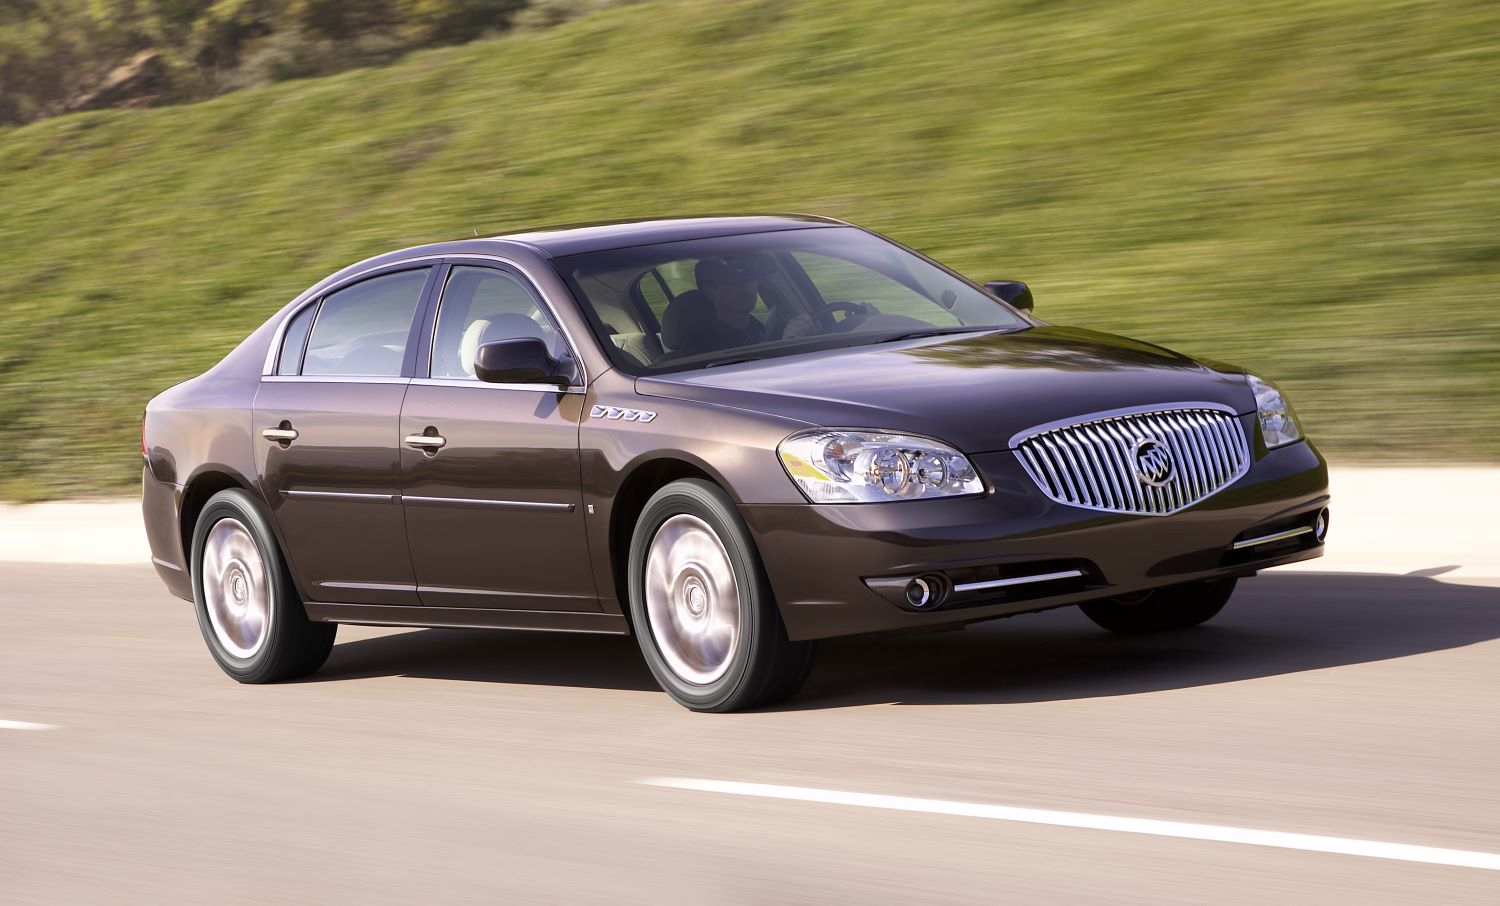 2006 Buick Lucerne Prone To Engine Problems | Gm Authority Is A New 2022 Buick Lucerne A Good Car